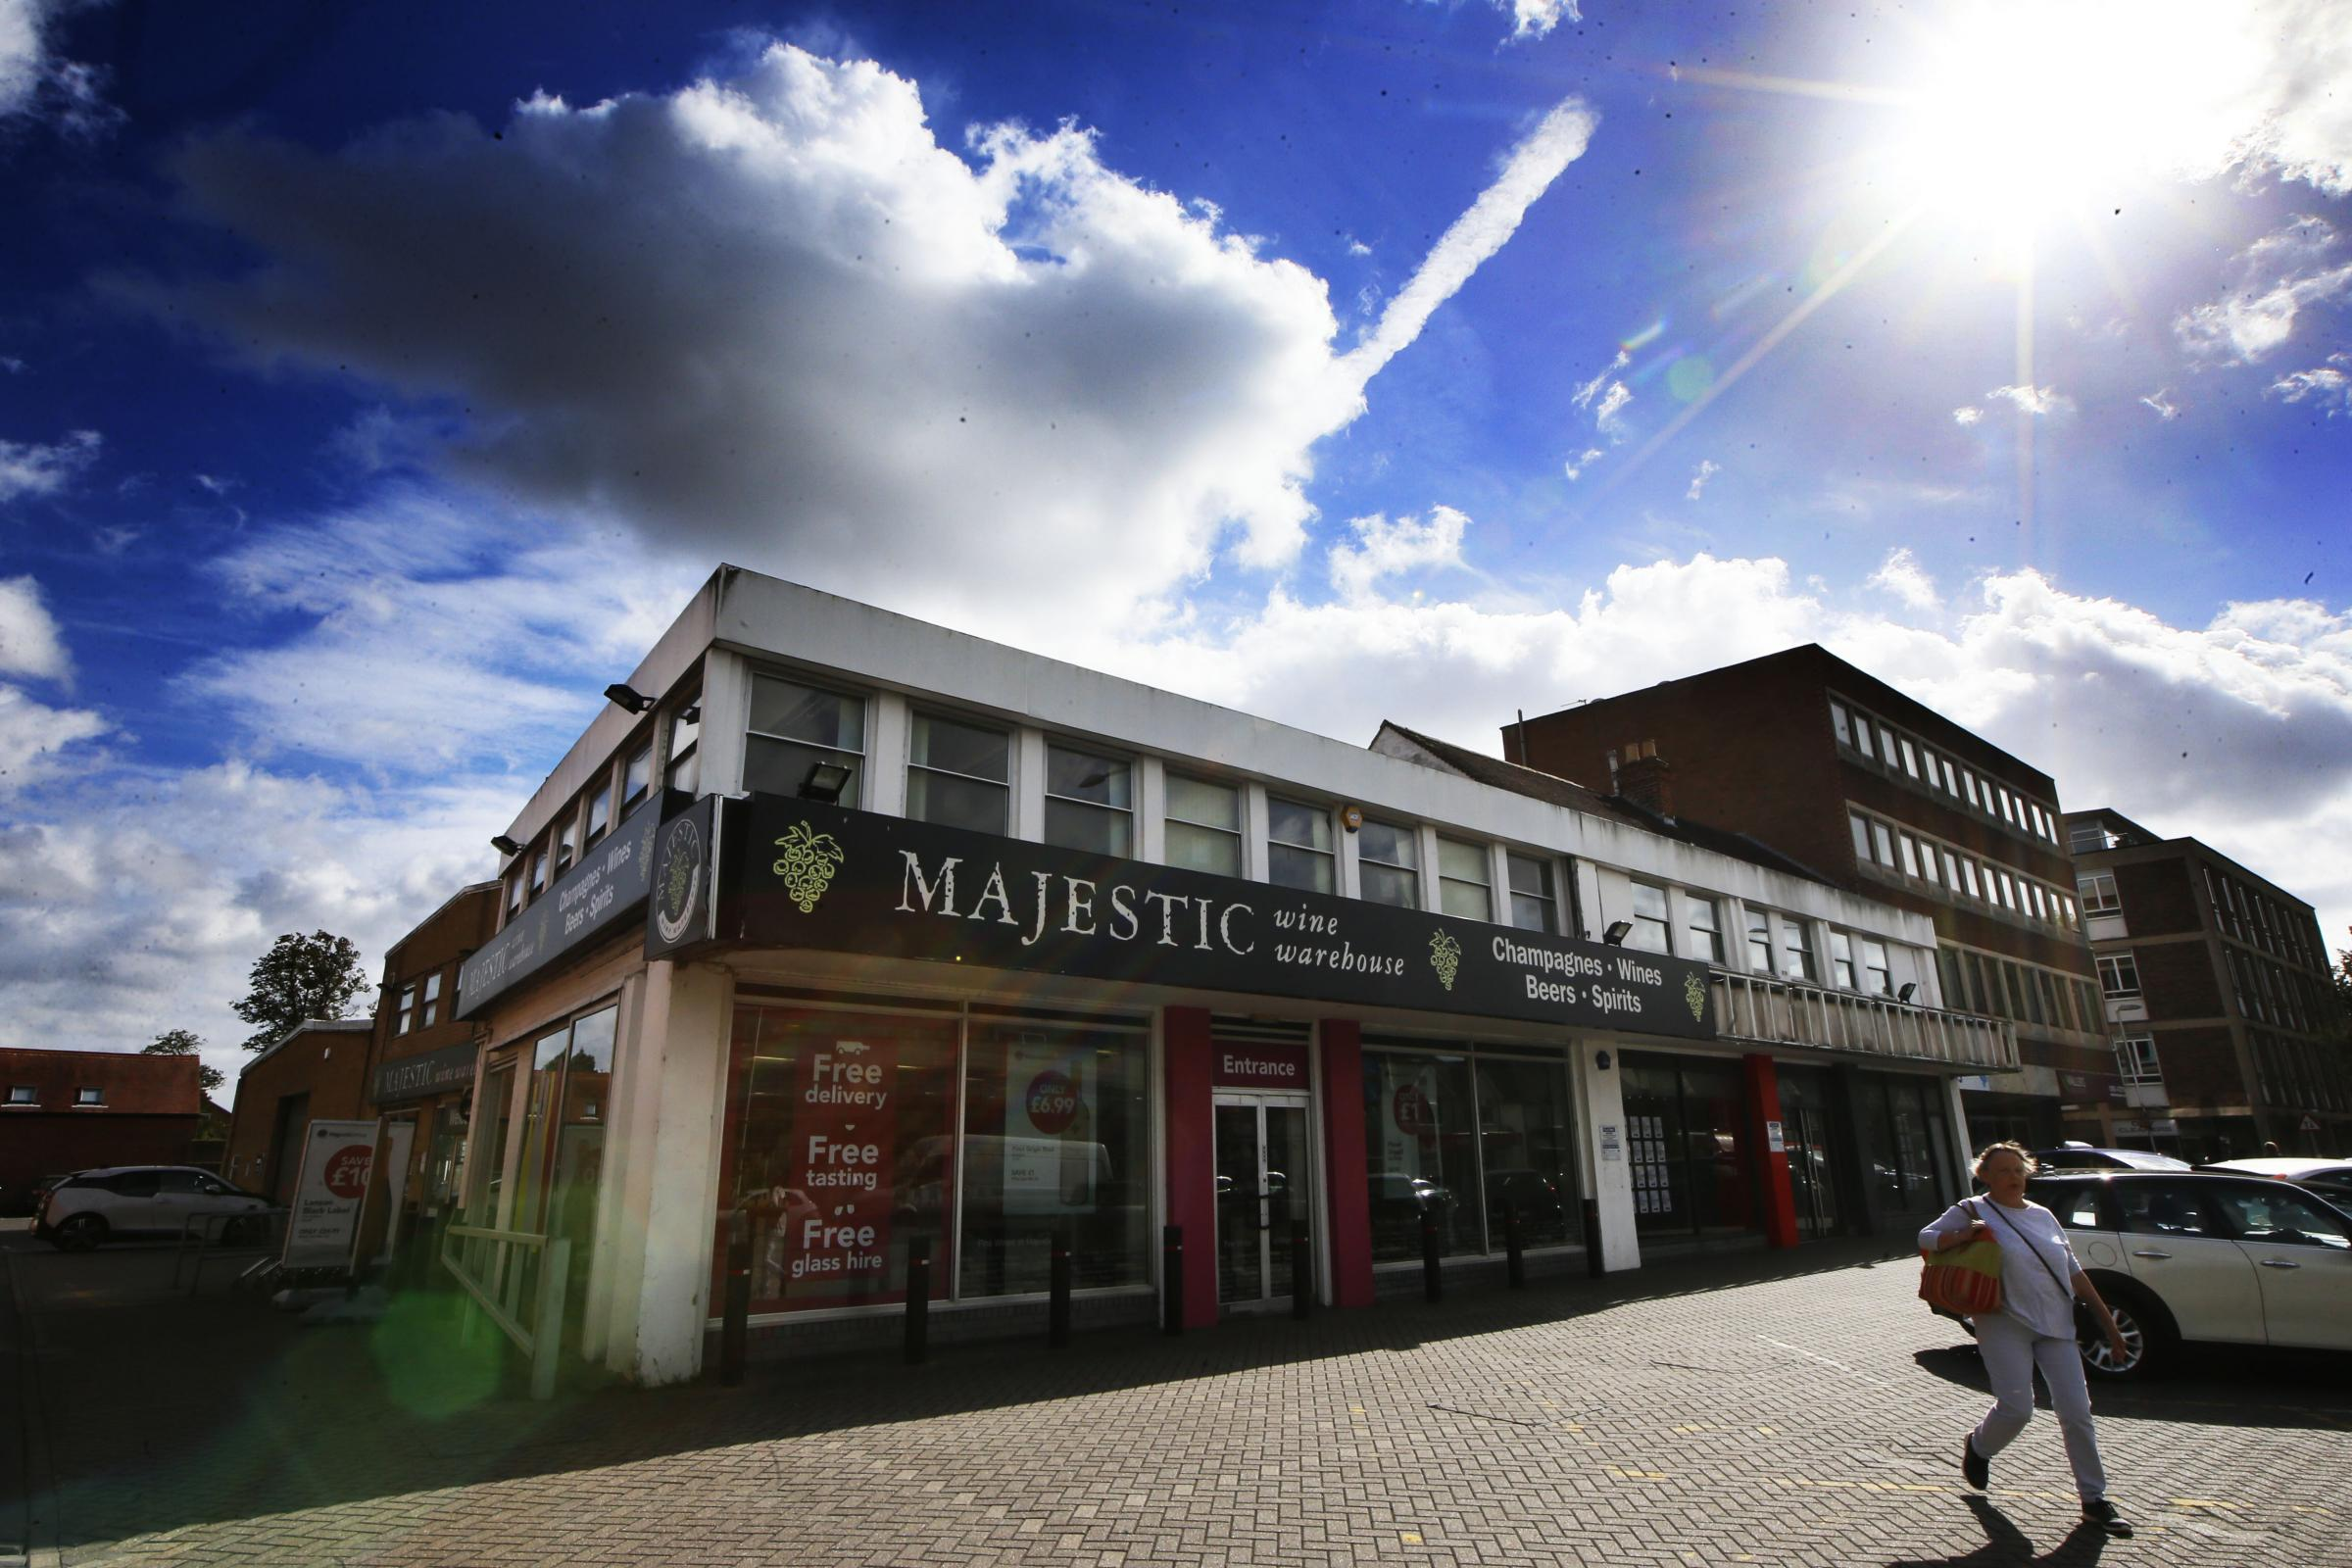 Majestic Wine in Summertown (Banbury Road, Oxford) in September 2018 before being demolished to make way for a new easyHotel. Picture: Ed Nix